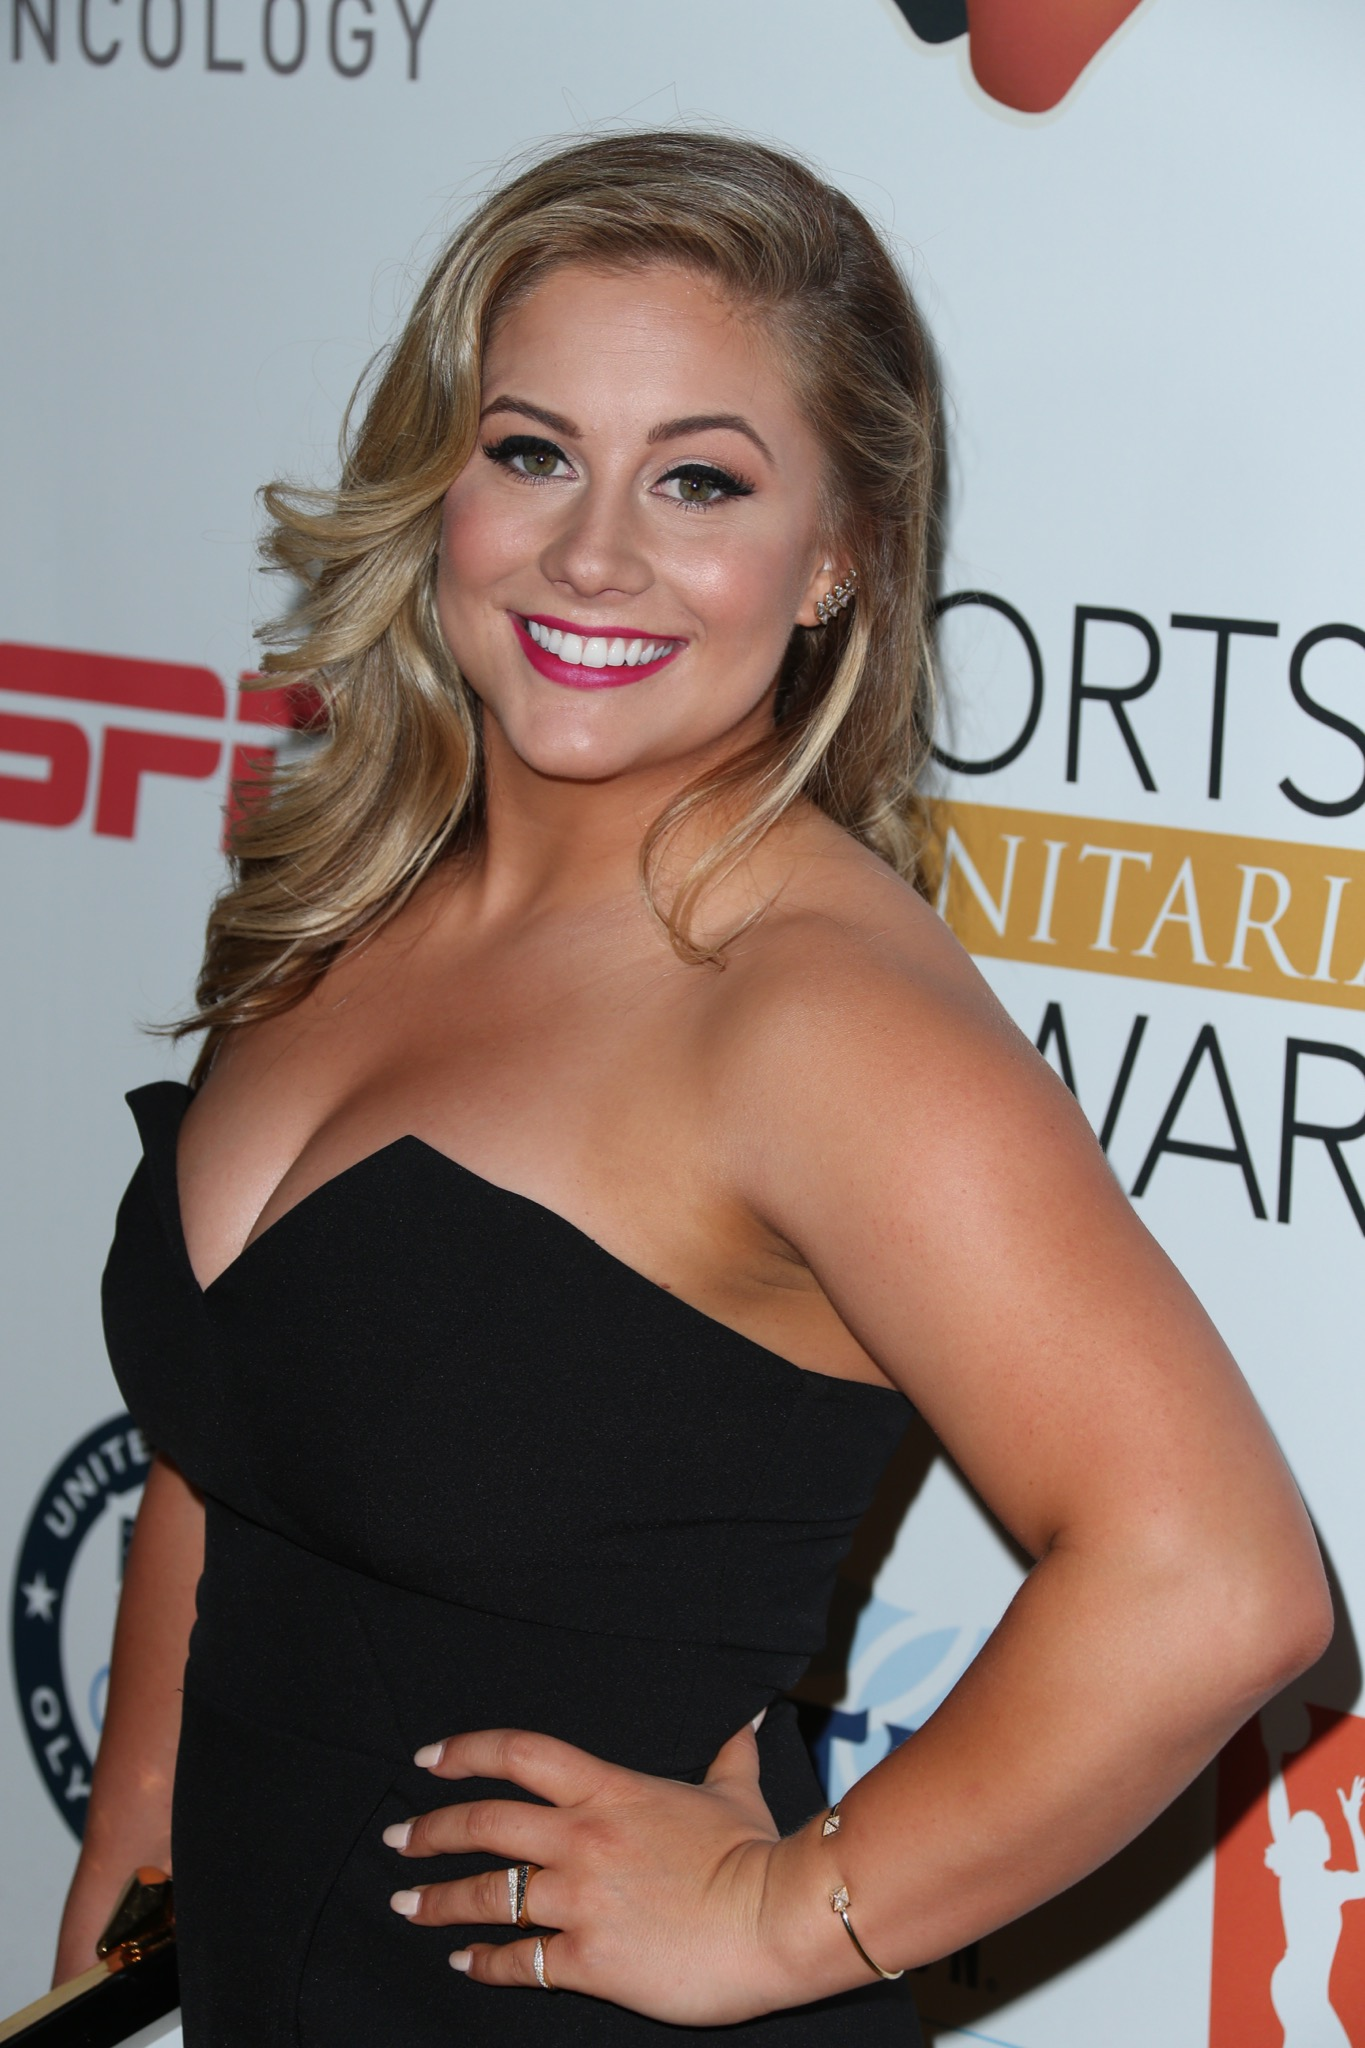 Sports Humanitarian of the Year Awards 2015 - Arrivals Featuring: Shawn Johnson Where: Los Angeles, California, United States When: 15 Jul 2015 Credit: FayesVision/WENN.com